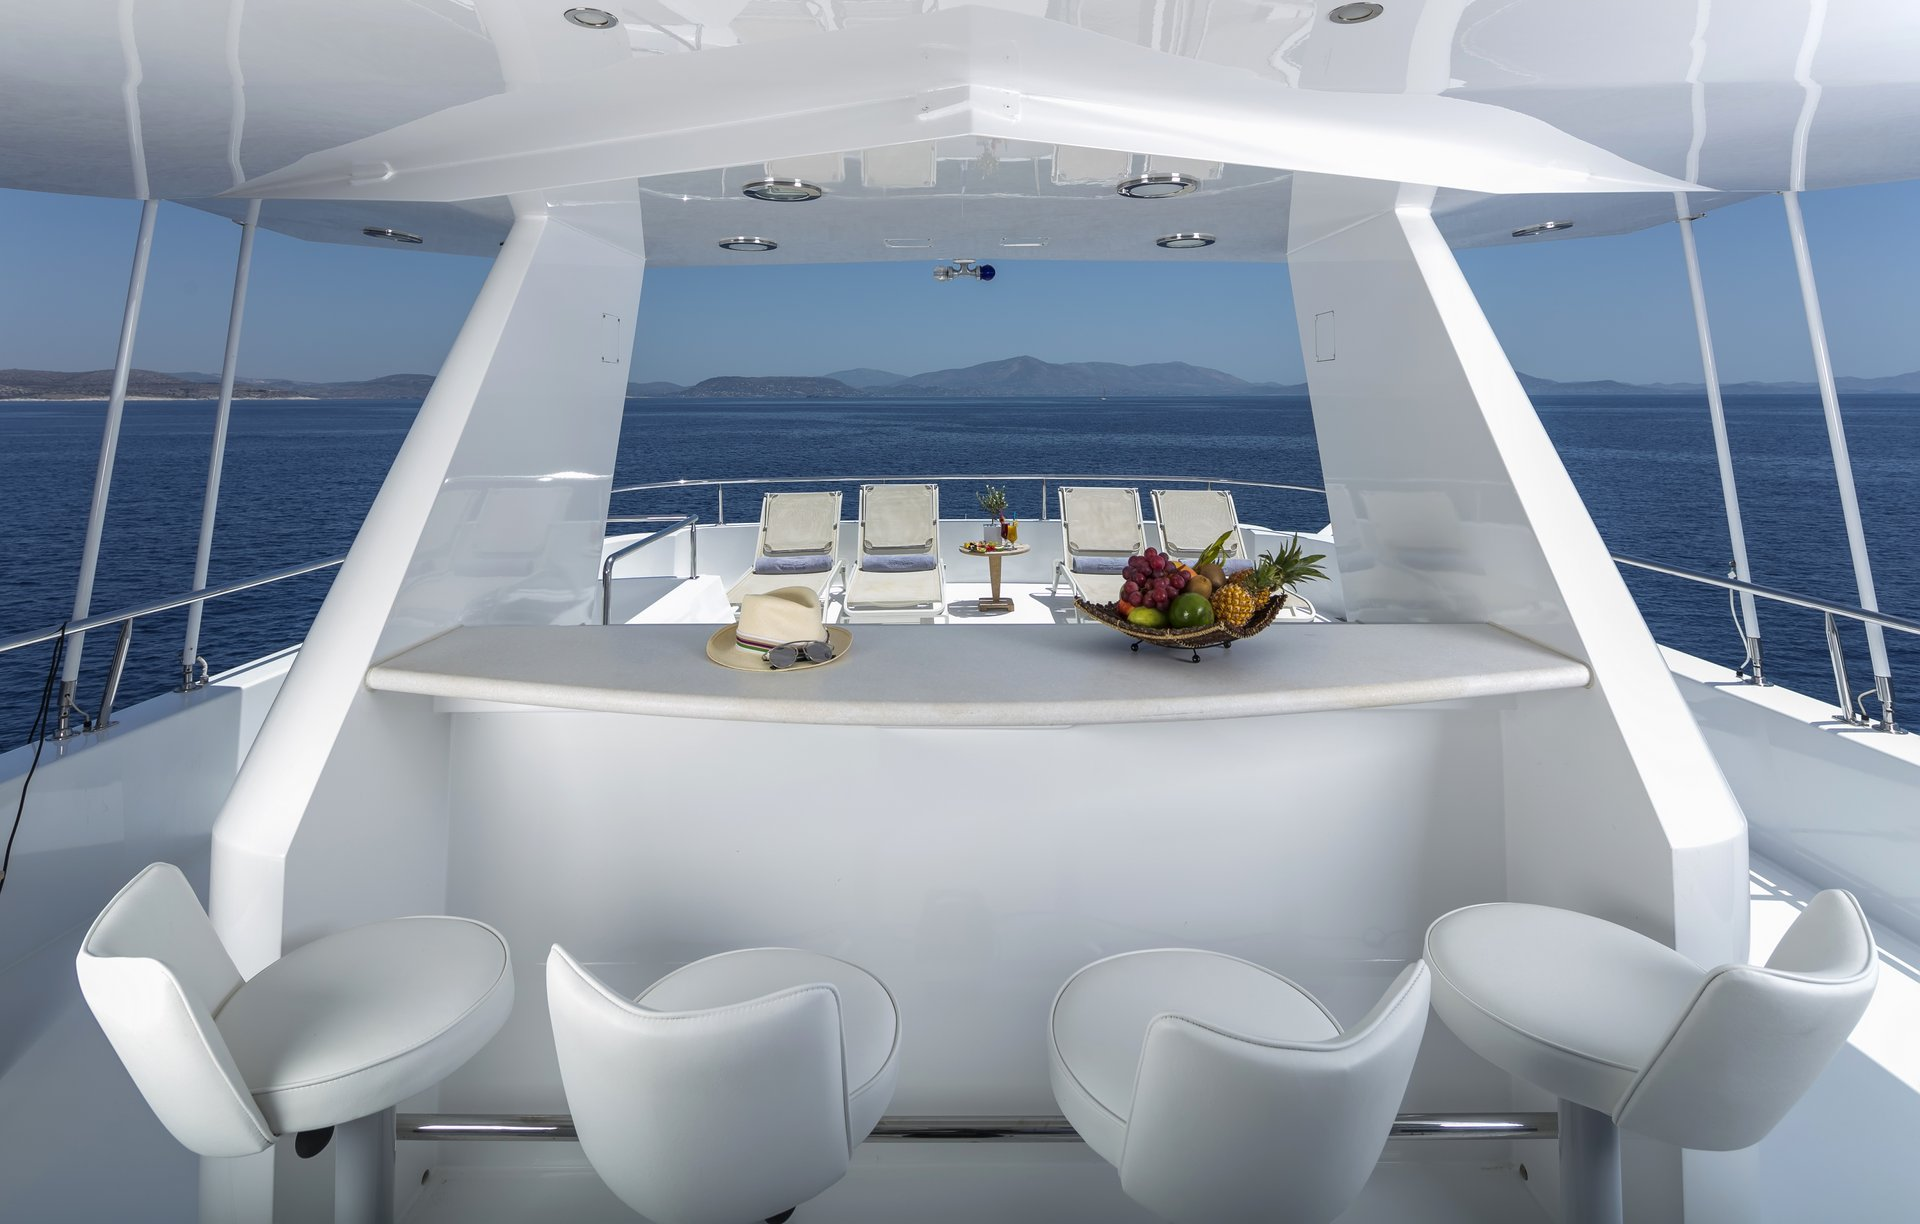 m/y endless summer yacht for charter deck bar